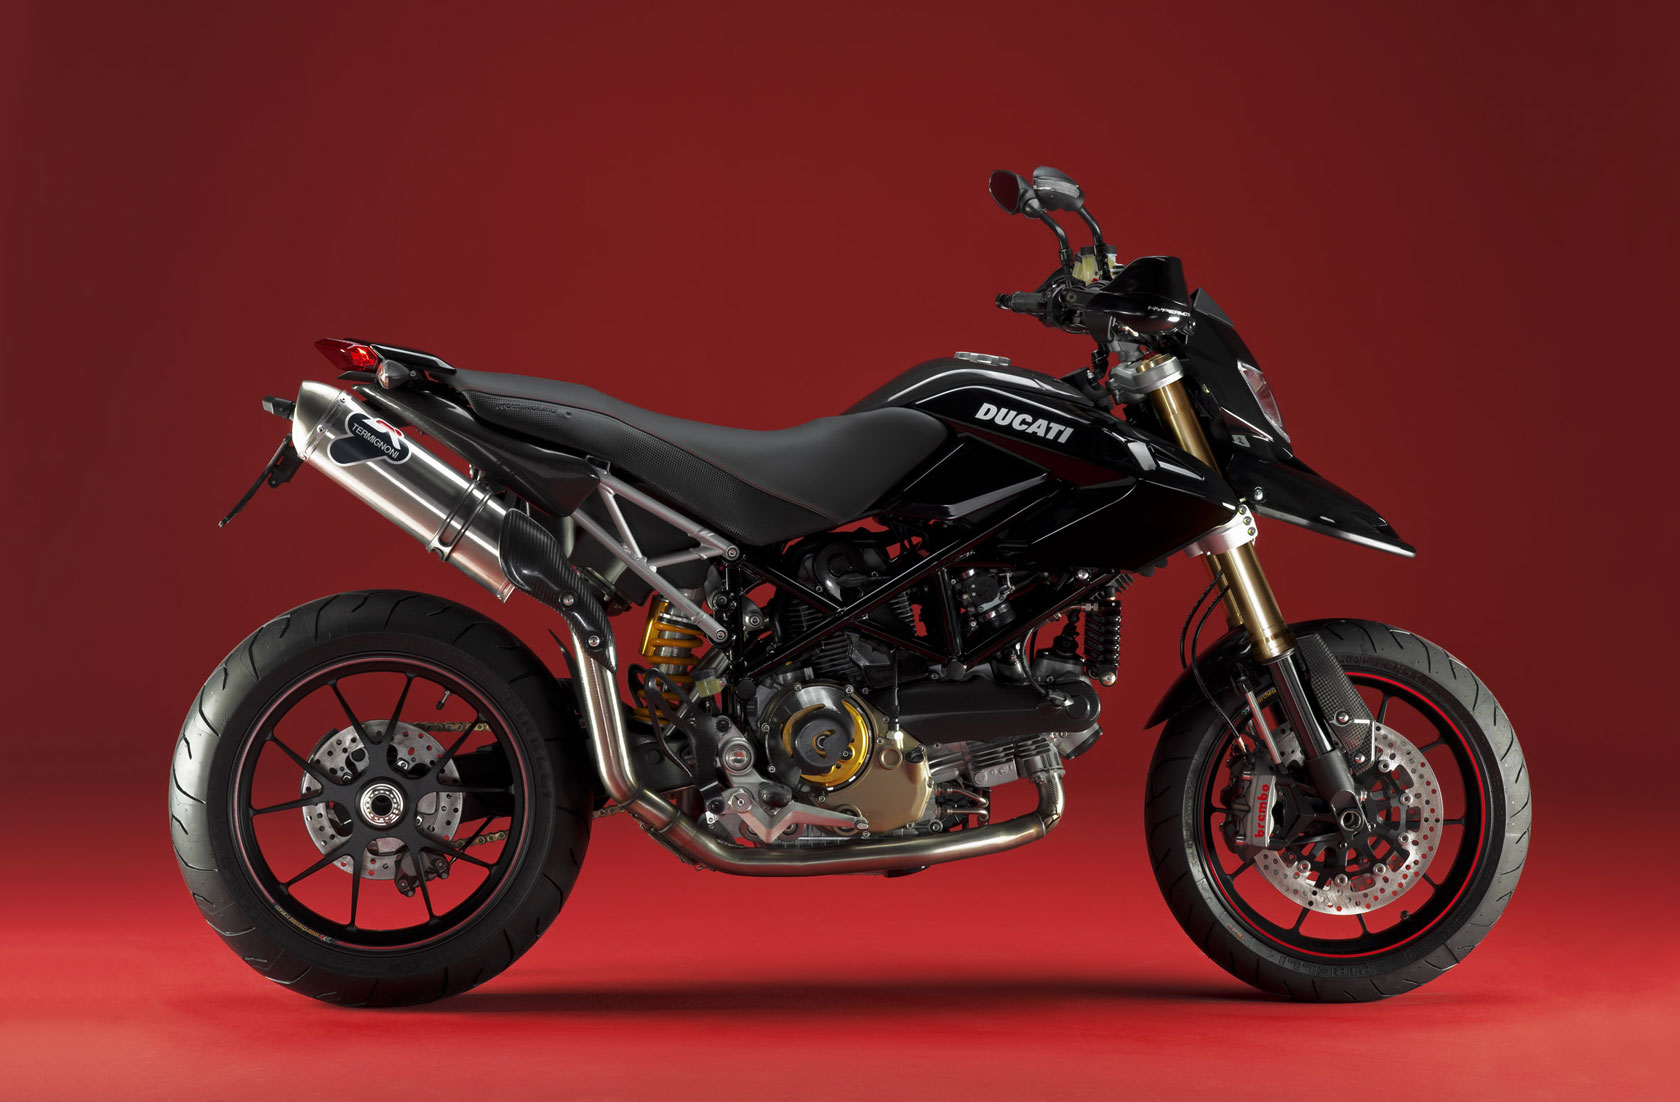 Ducati HM Hypermotard 2006 images #79432